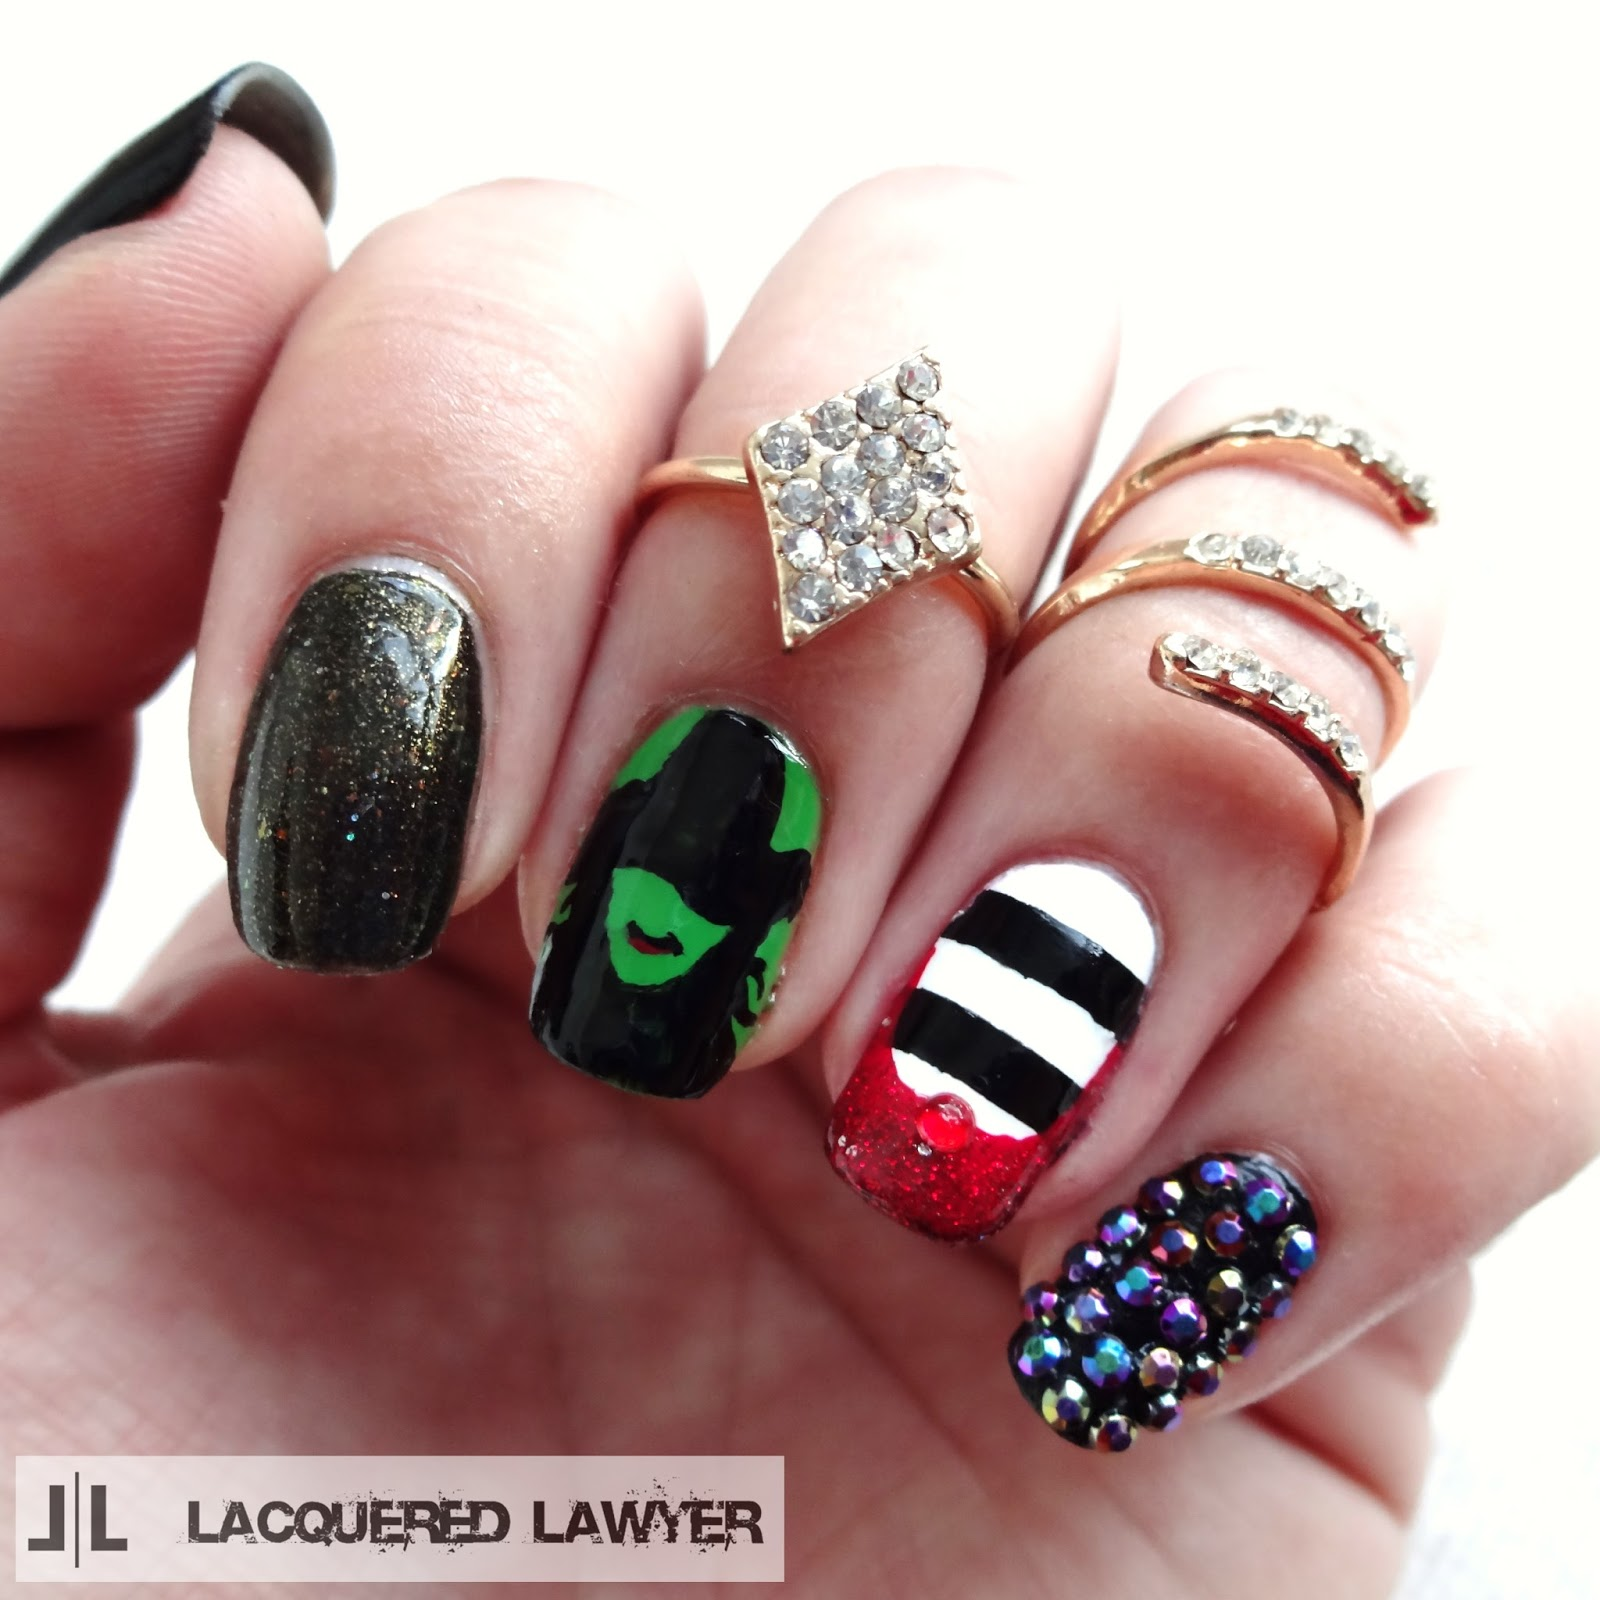 Lacquered Lawyer | Nail Art Blog: Wicked Witch